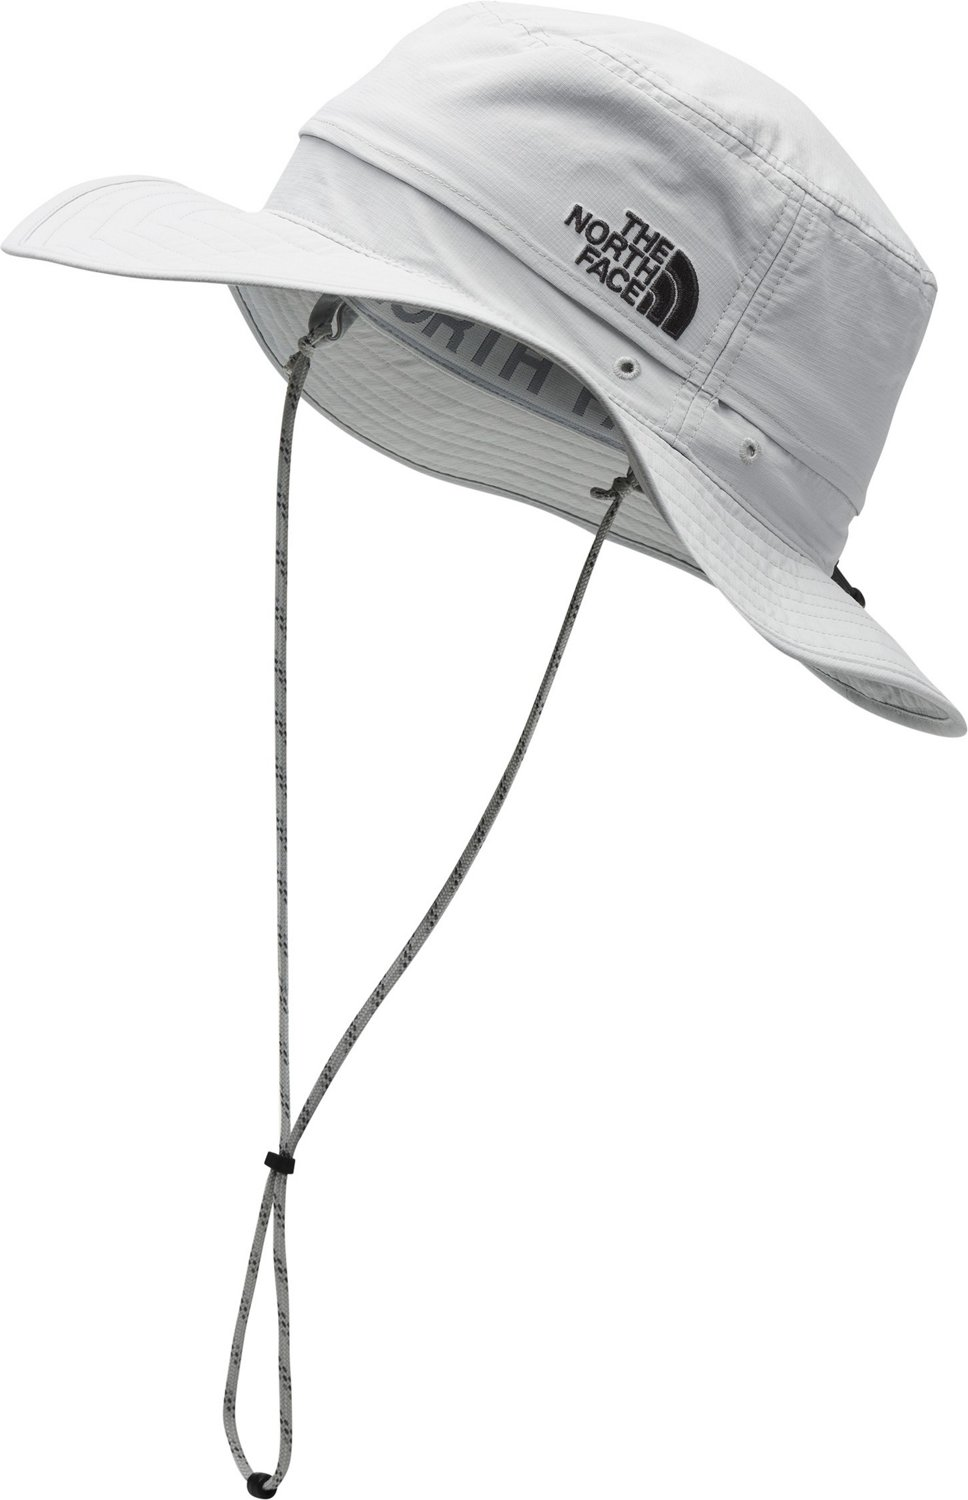 6c6e8298bcd39 Display product reviews for The North Face Men s Horizon Breeze Brimmer Hat